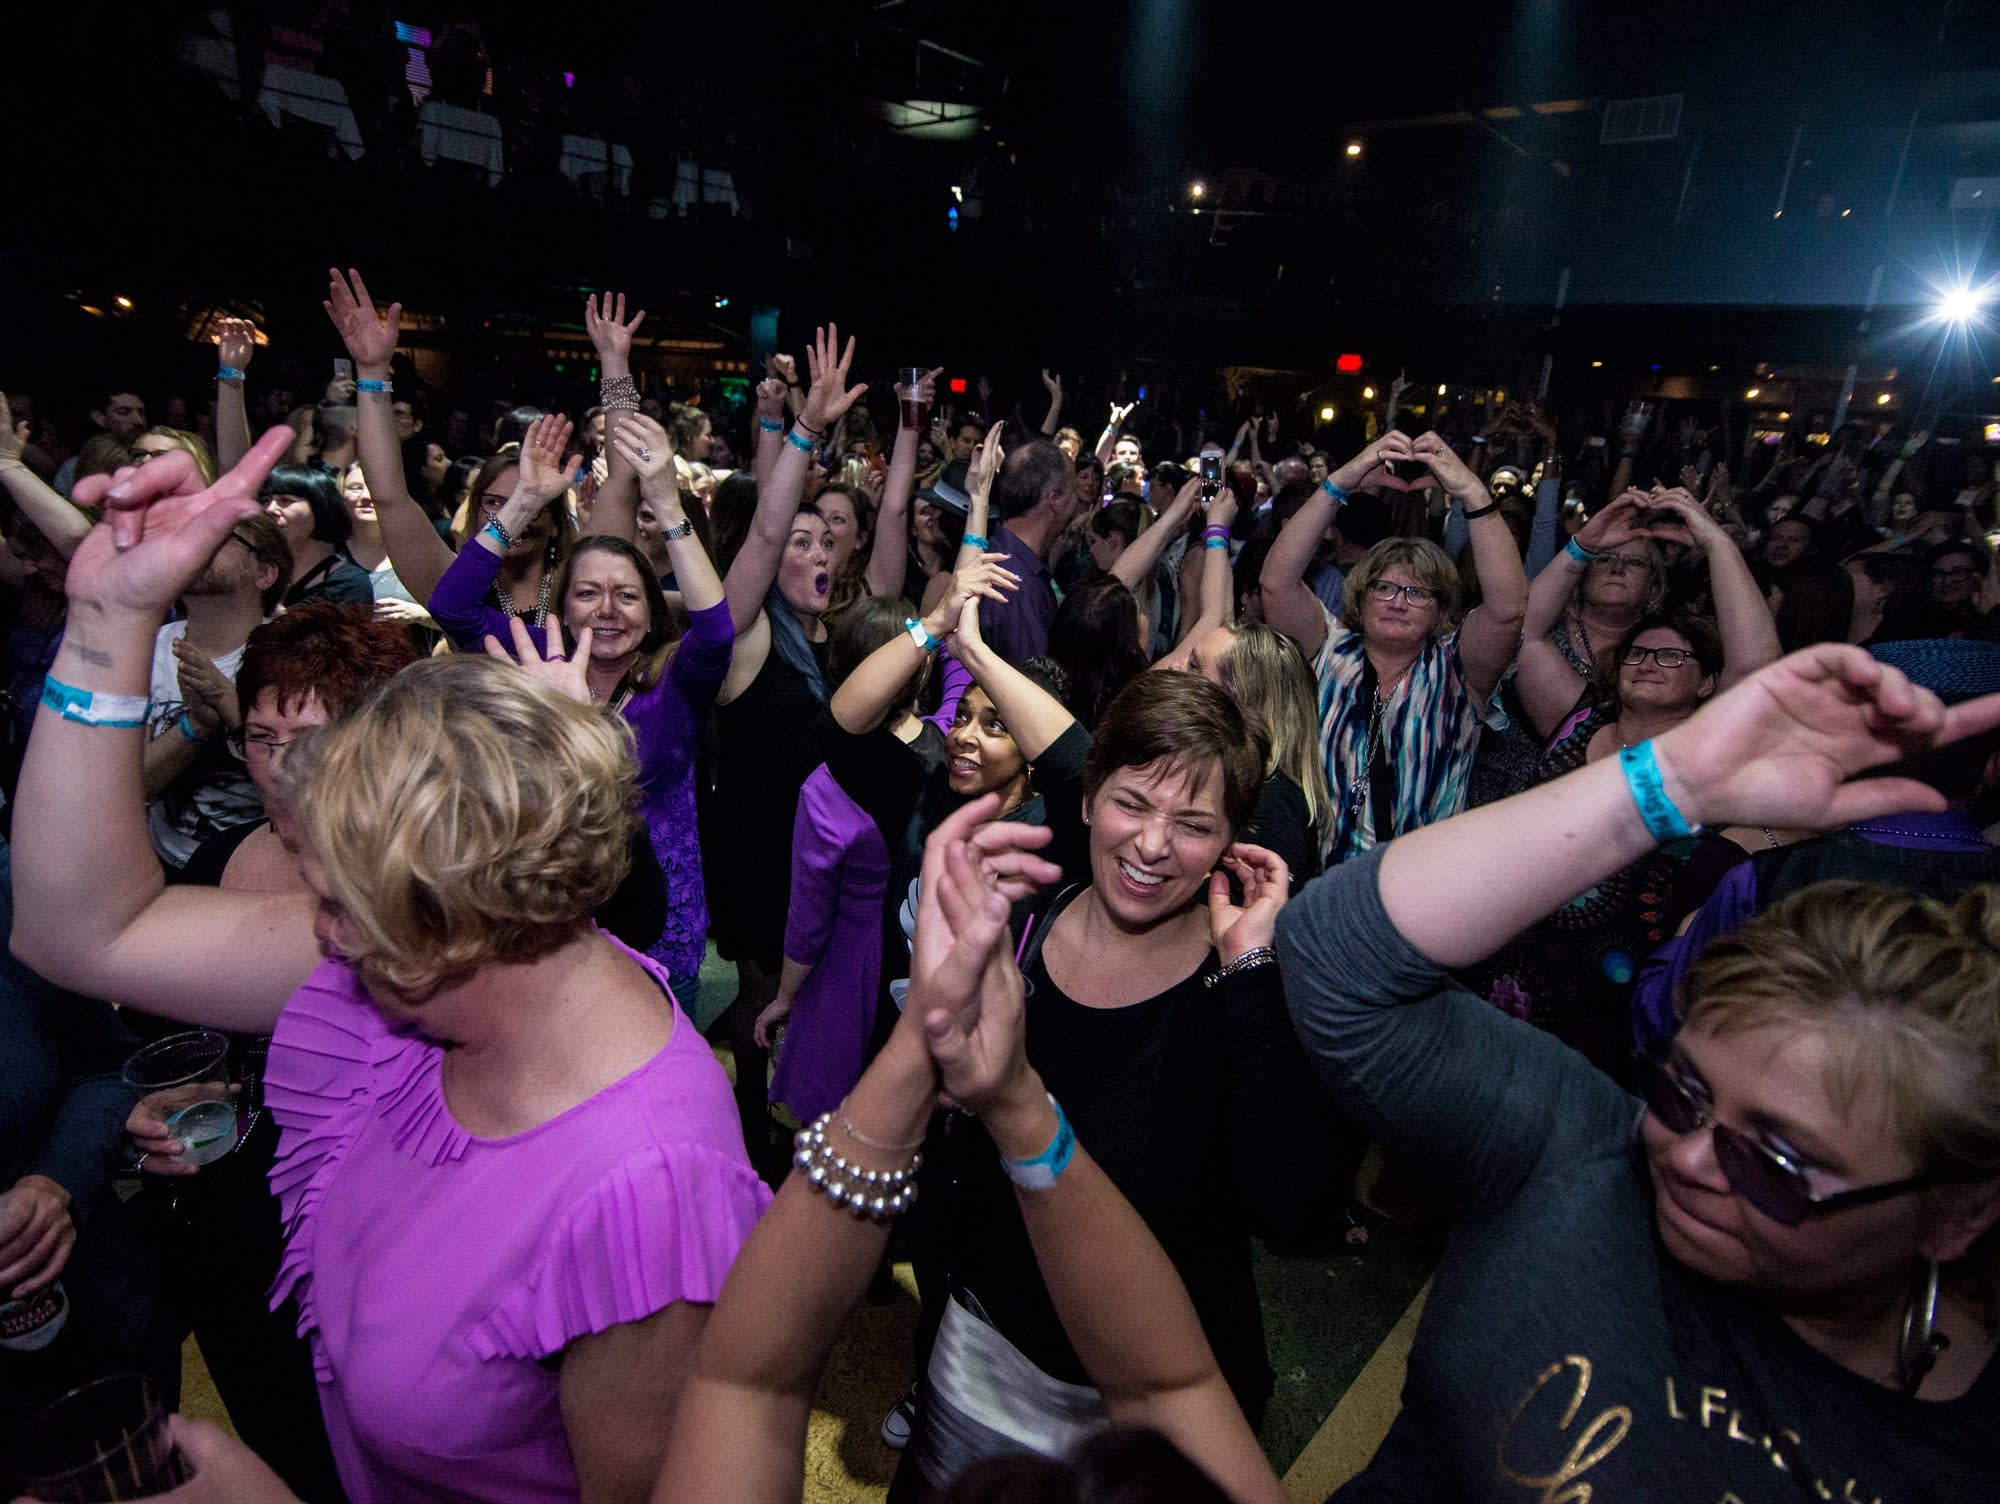 Prince fans dance and cheer at First Avenue.